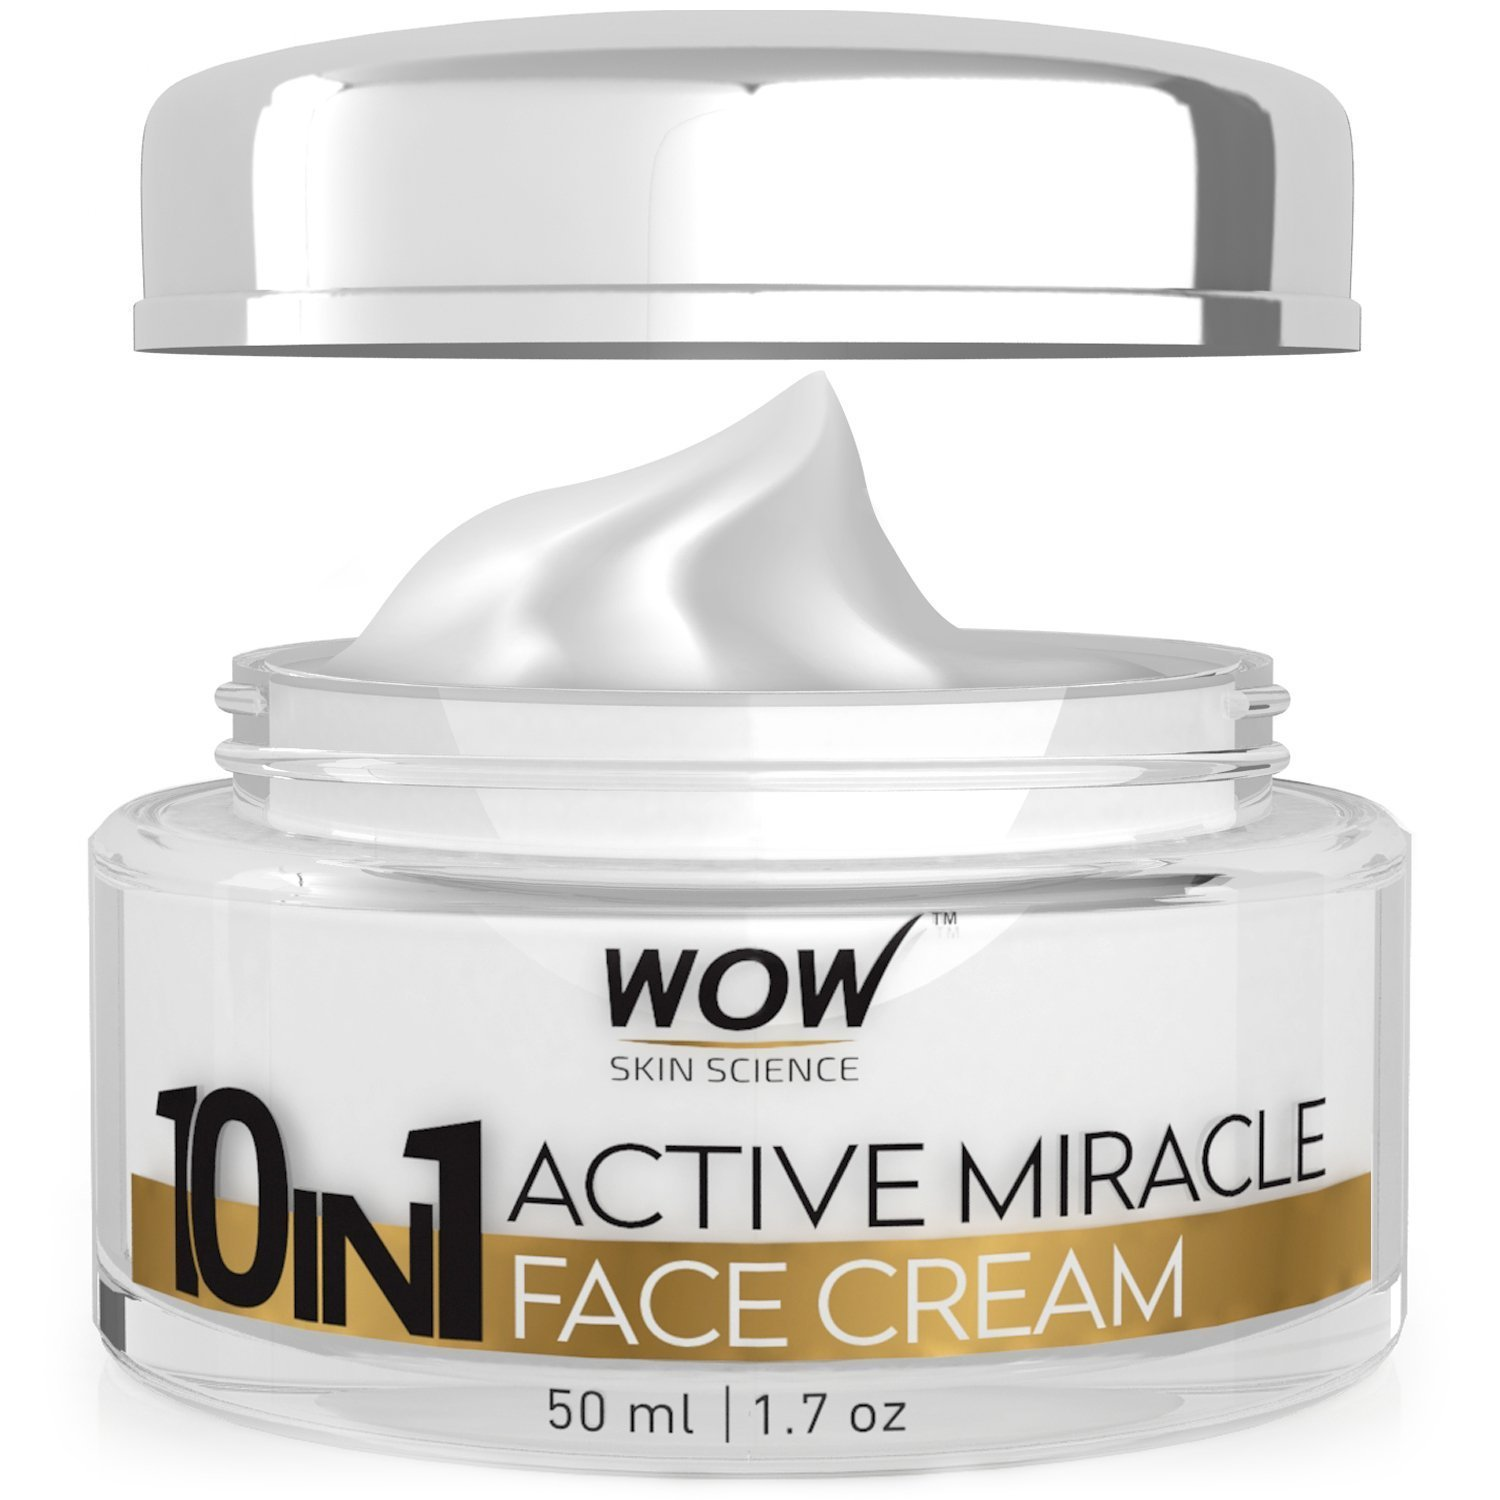 WOW 10 in 1 Active Miracle Day Face Cream, 50ml product image